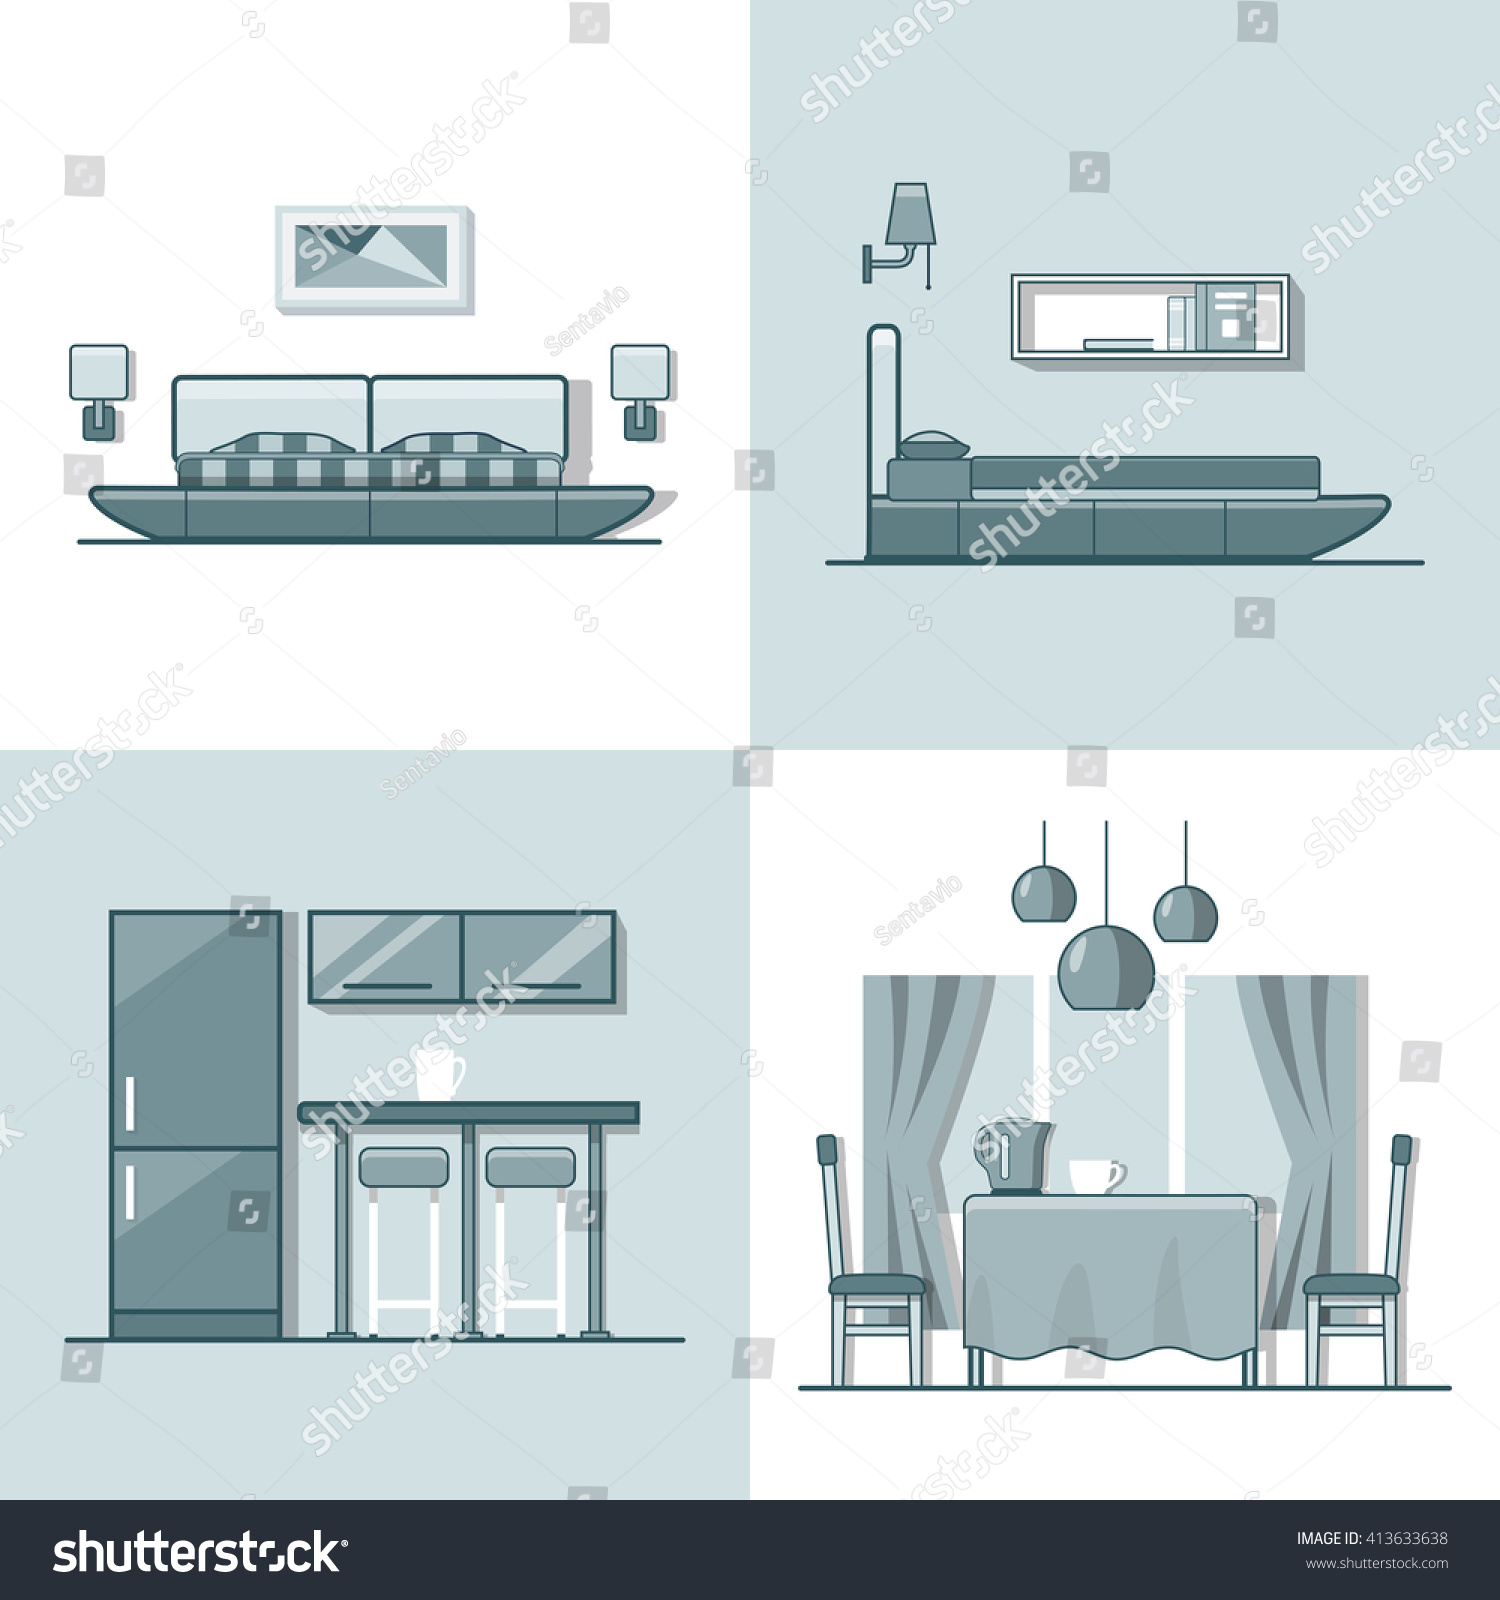 Bedroom Kitchen Living Dining Room Interior Indoor Set Linear Monocolor Stroke Outline Flat Style Vector